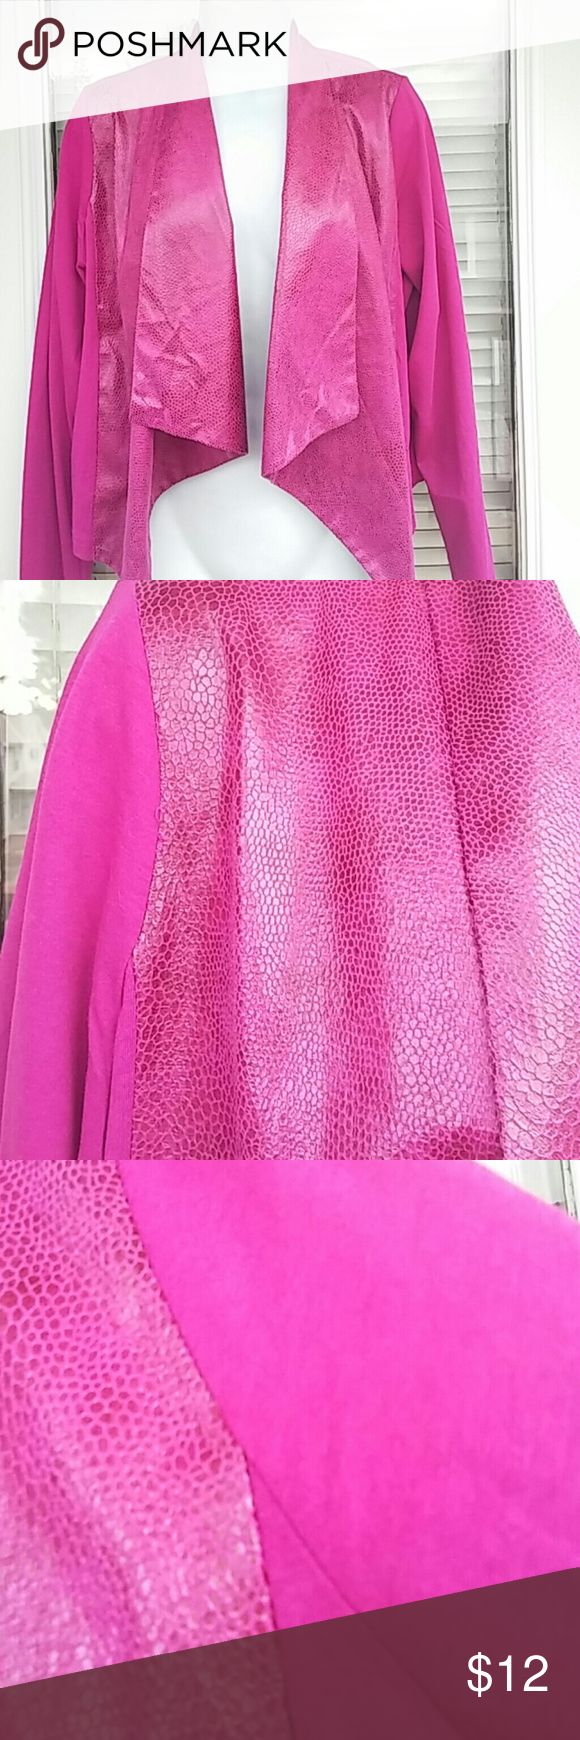 Giuliana Rancic luxe cardigan NEW/tags Giuliana rancic luxe draped cardigan Brand new with tags.  Giuliana Rancic fuschia light weight jacket.  Long sleeved.  Size large.  Front draping has faux snakeskin look. Sleeves and back are solid cotton look.   Material is poly cotton modal blend.  Length measures 20 inches.  Very cute Guiliana Jackets & Coats